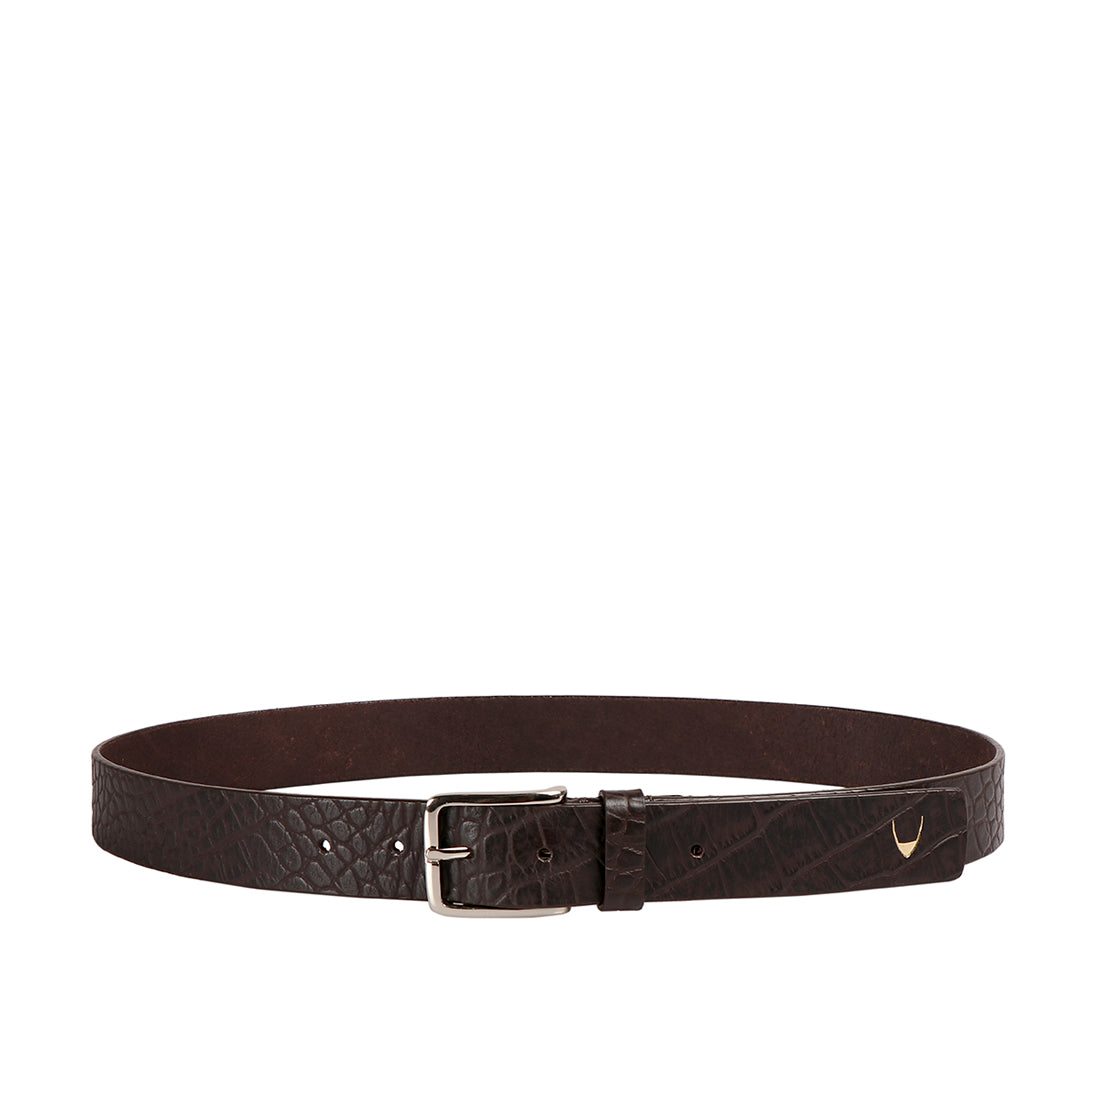 EE LEANARDO MENS NON-REVERSIBLE BELT